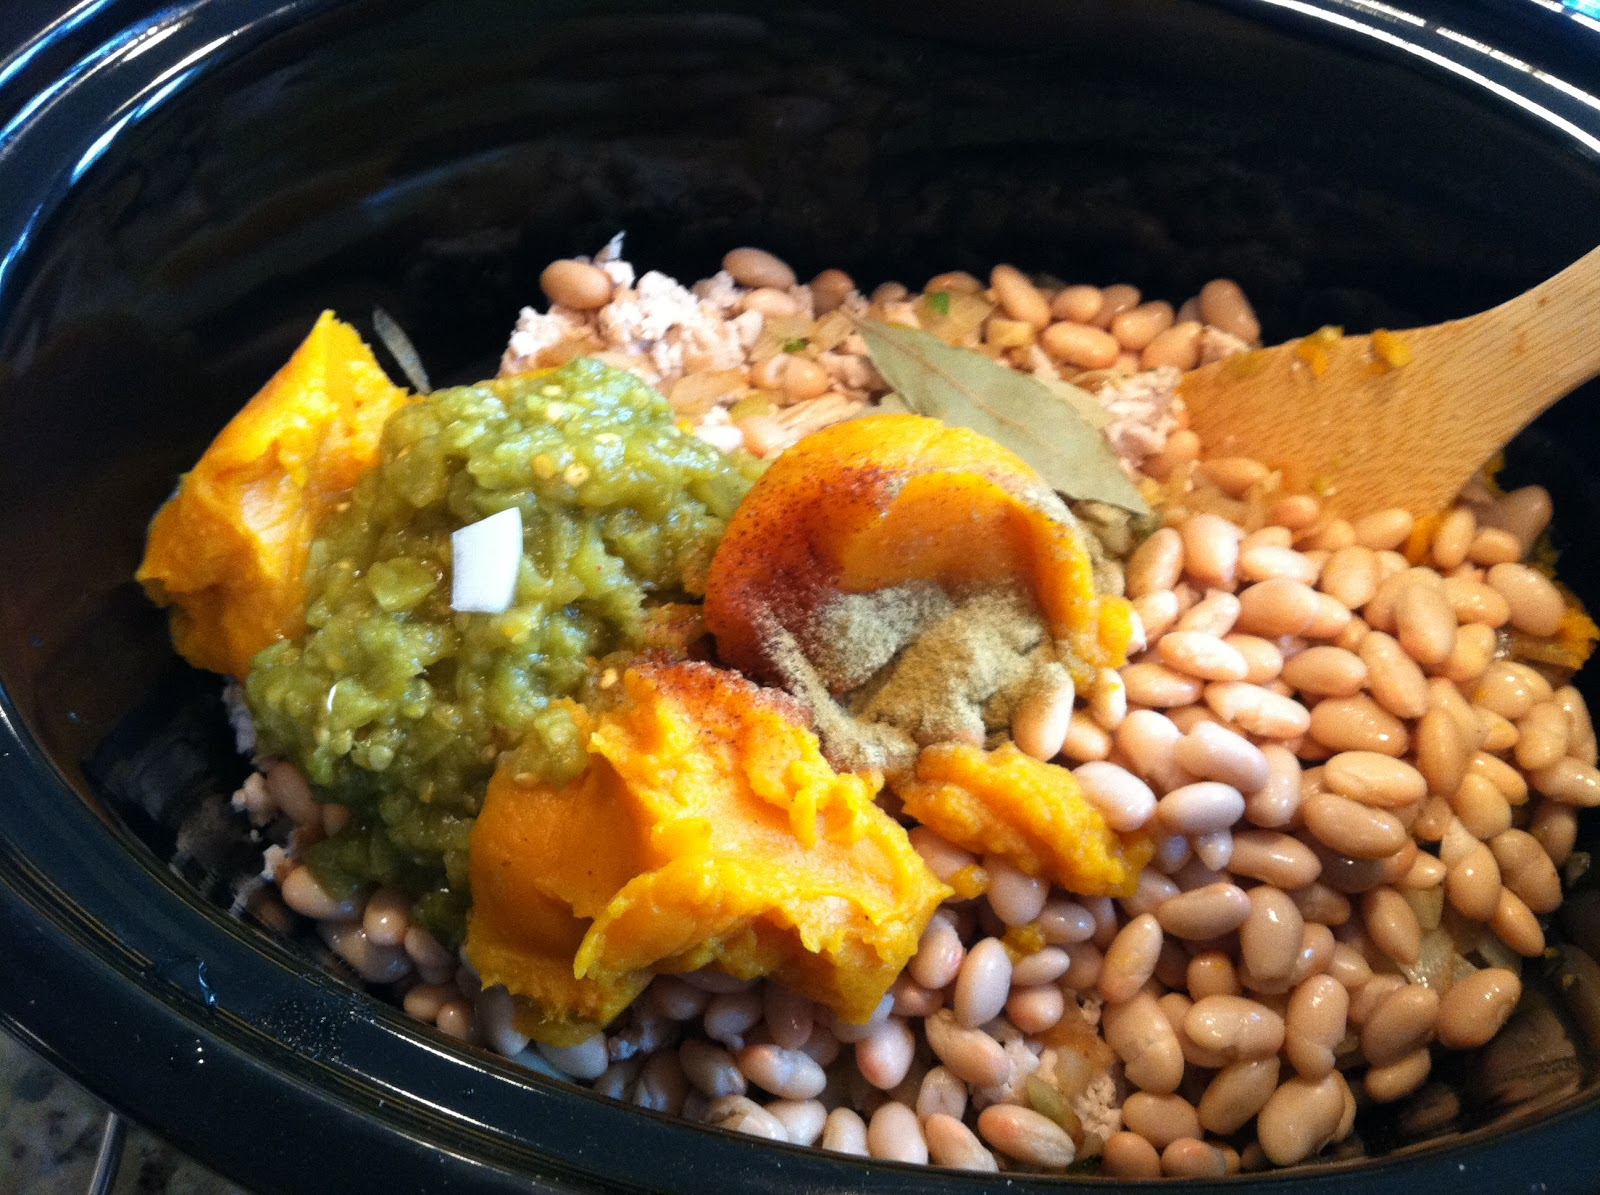 The Green Life: Crock Pot: Turkey White Bean Pumpkin Chili